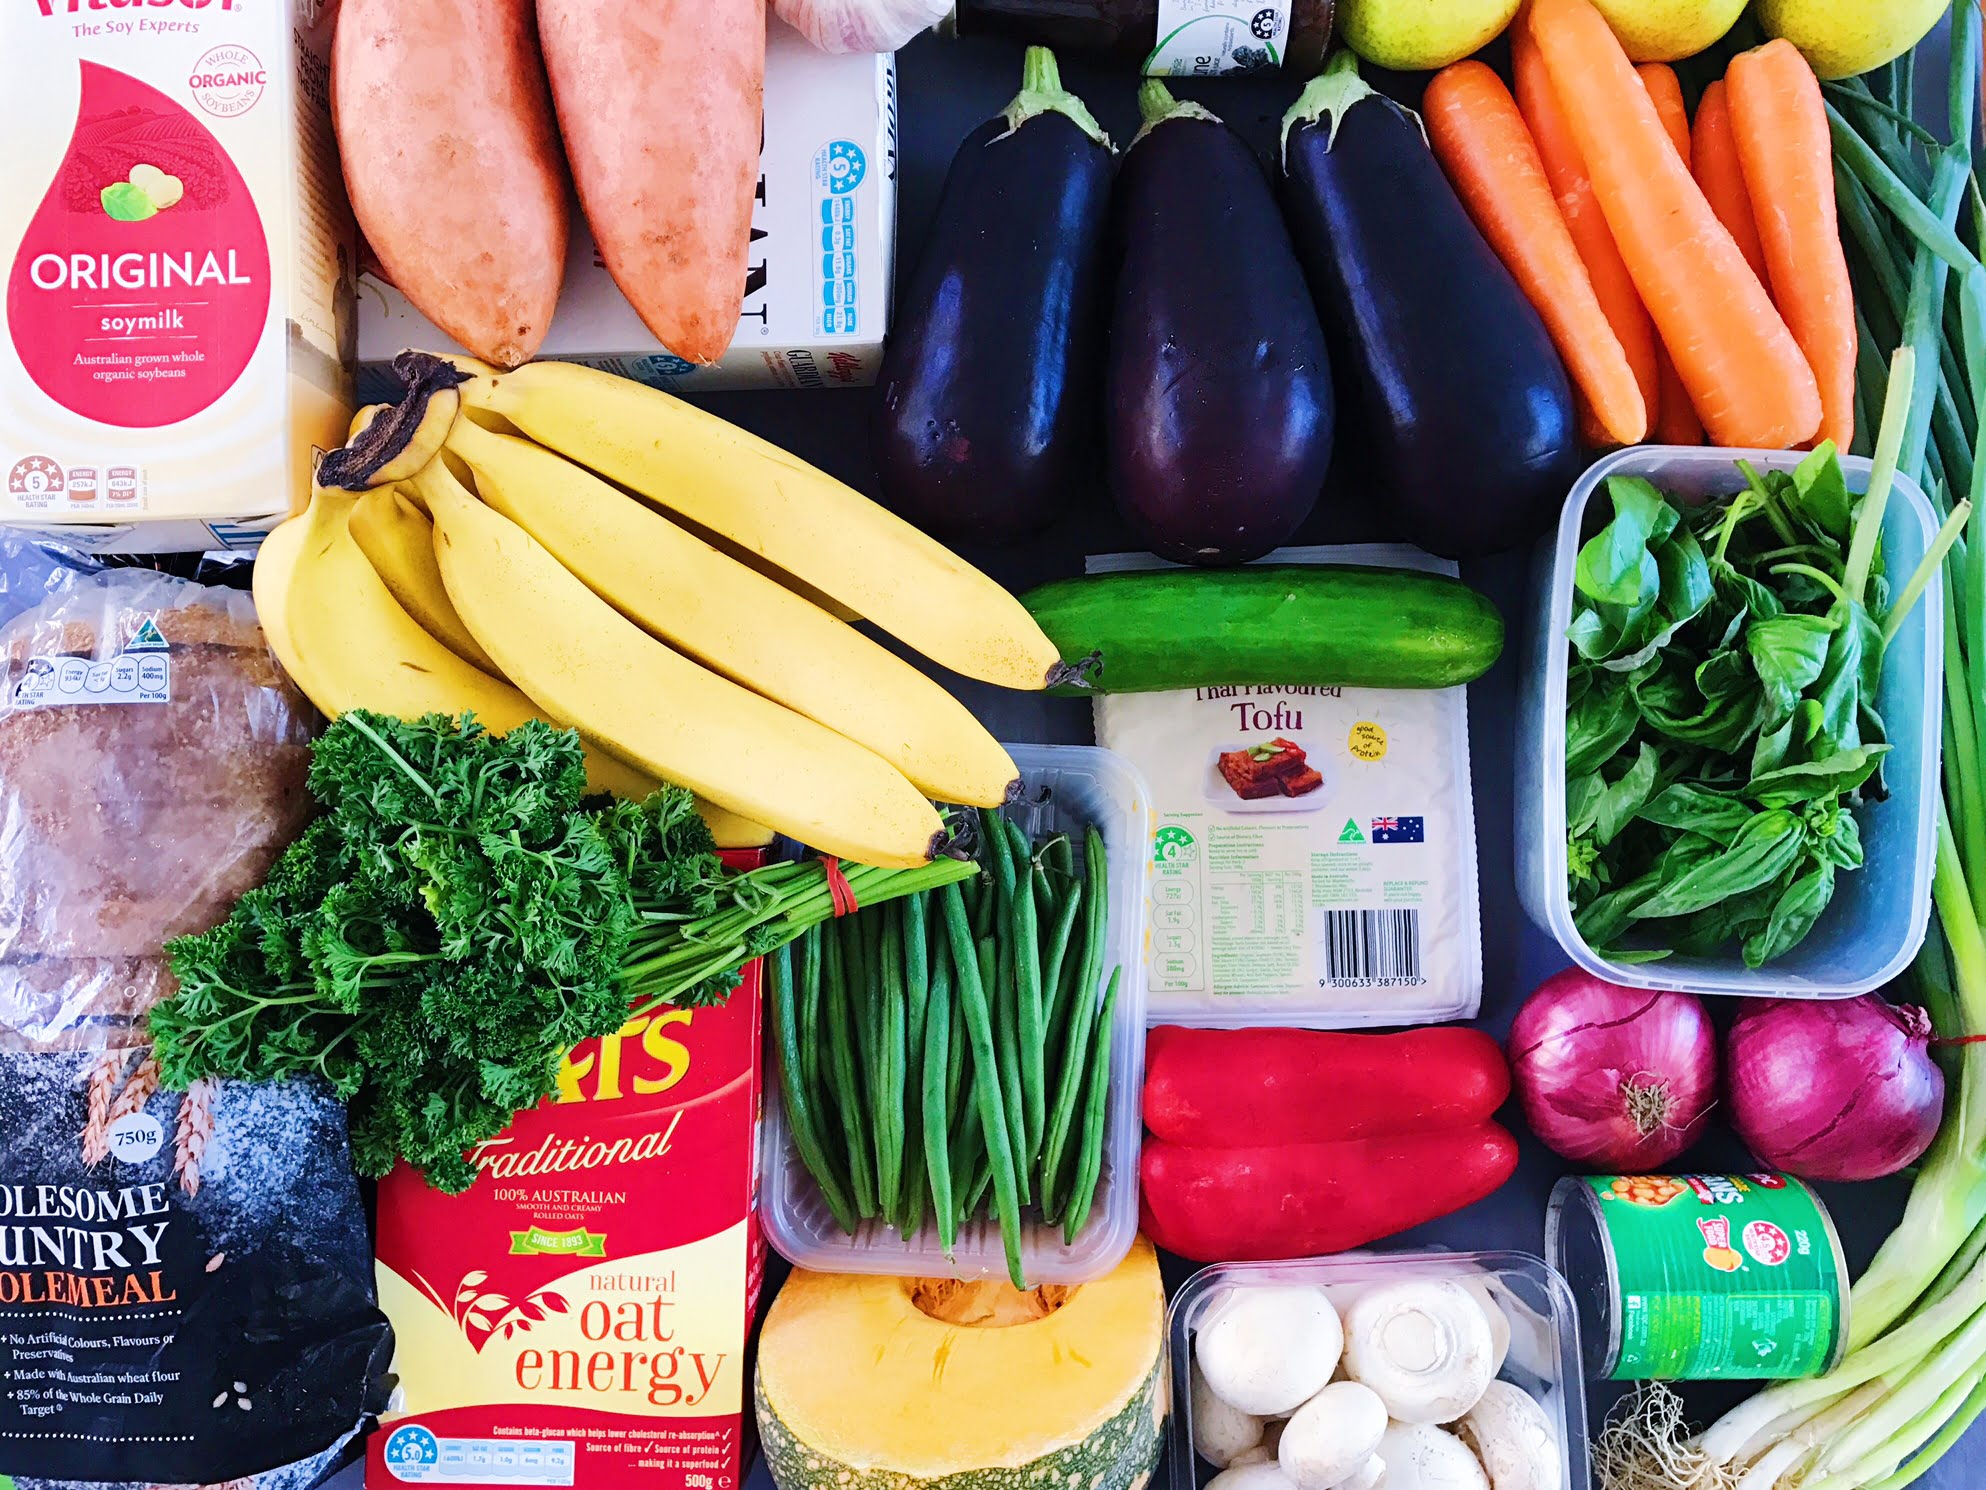 How to Save Time & Make Healthy Choices at the Supermarket